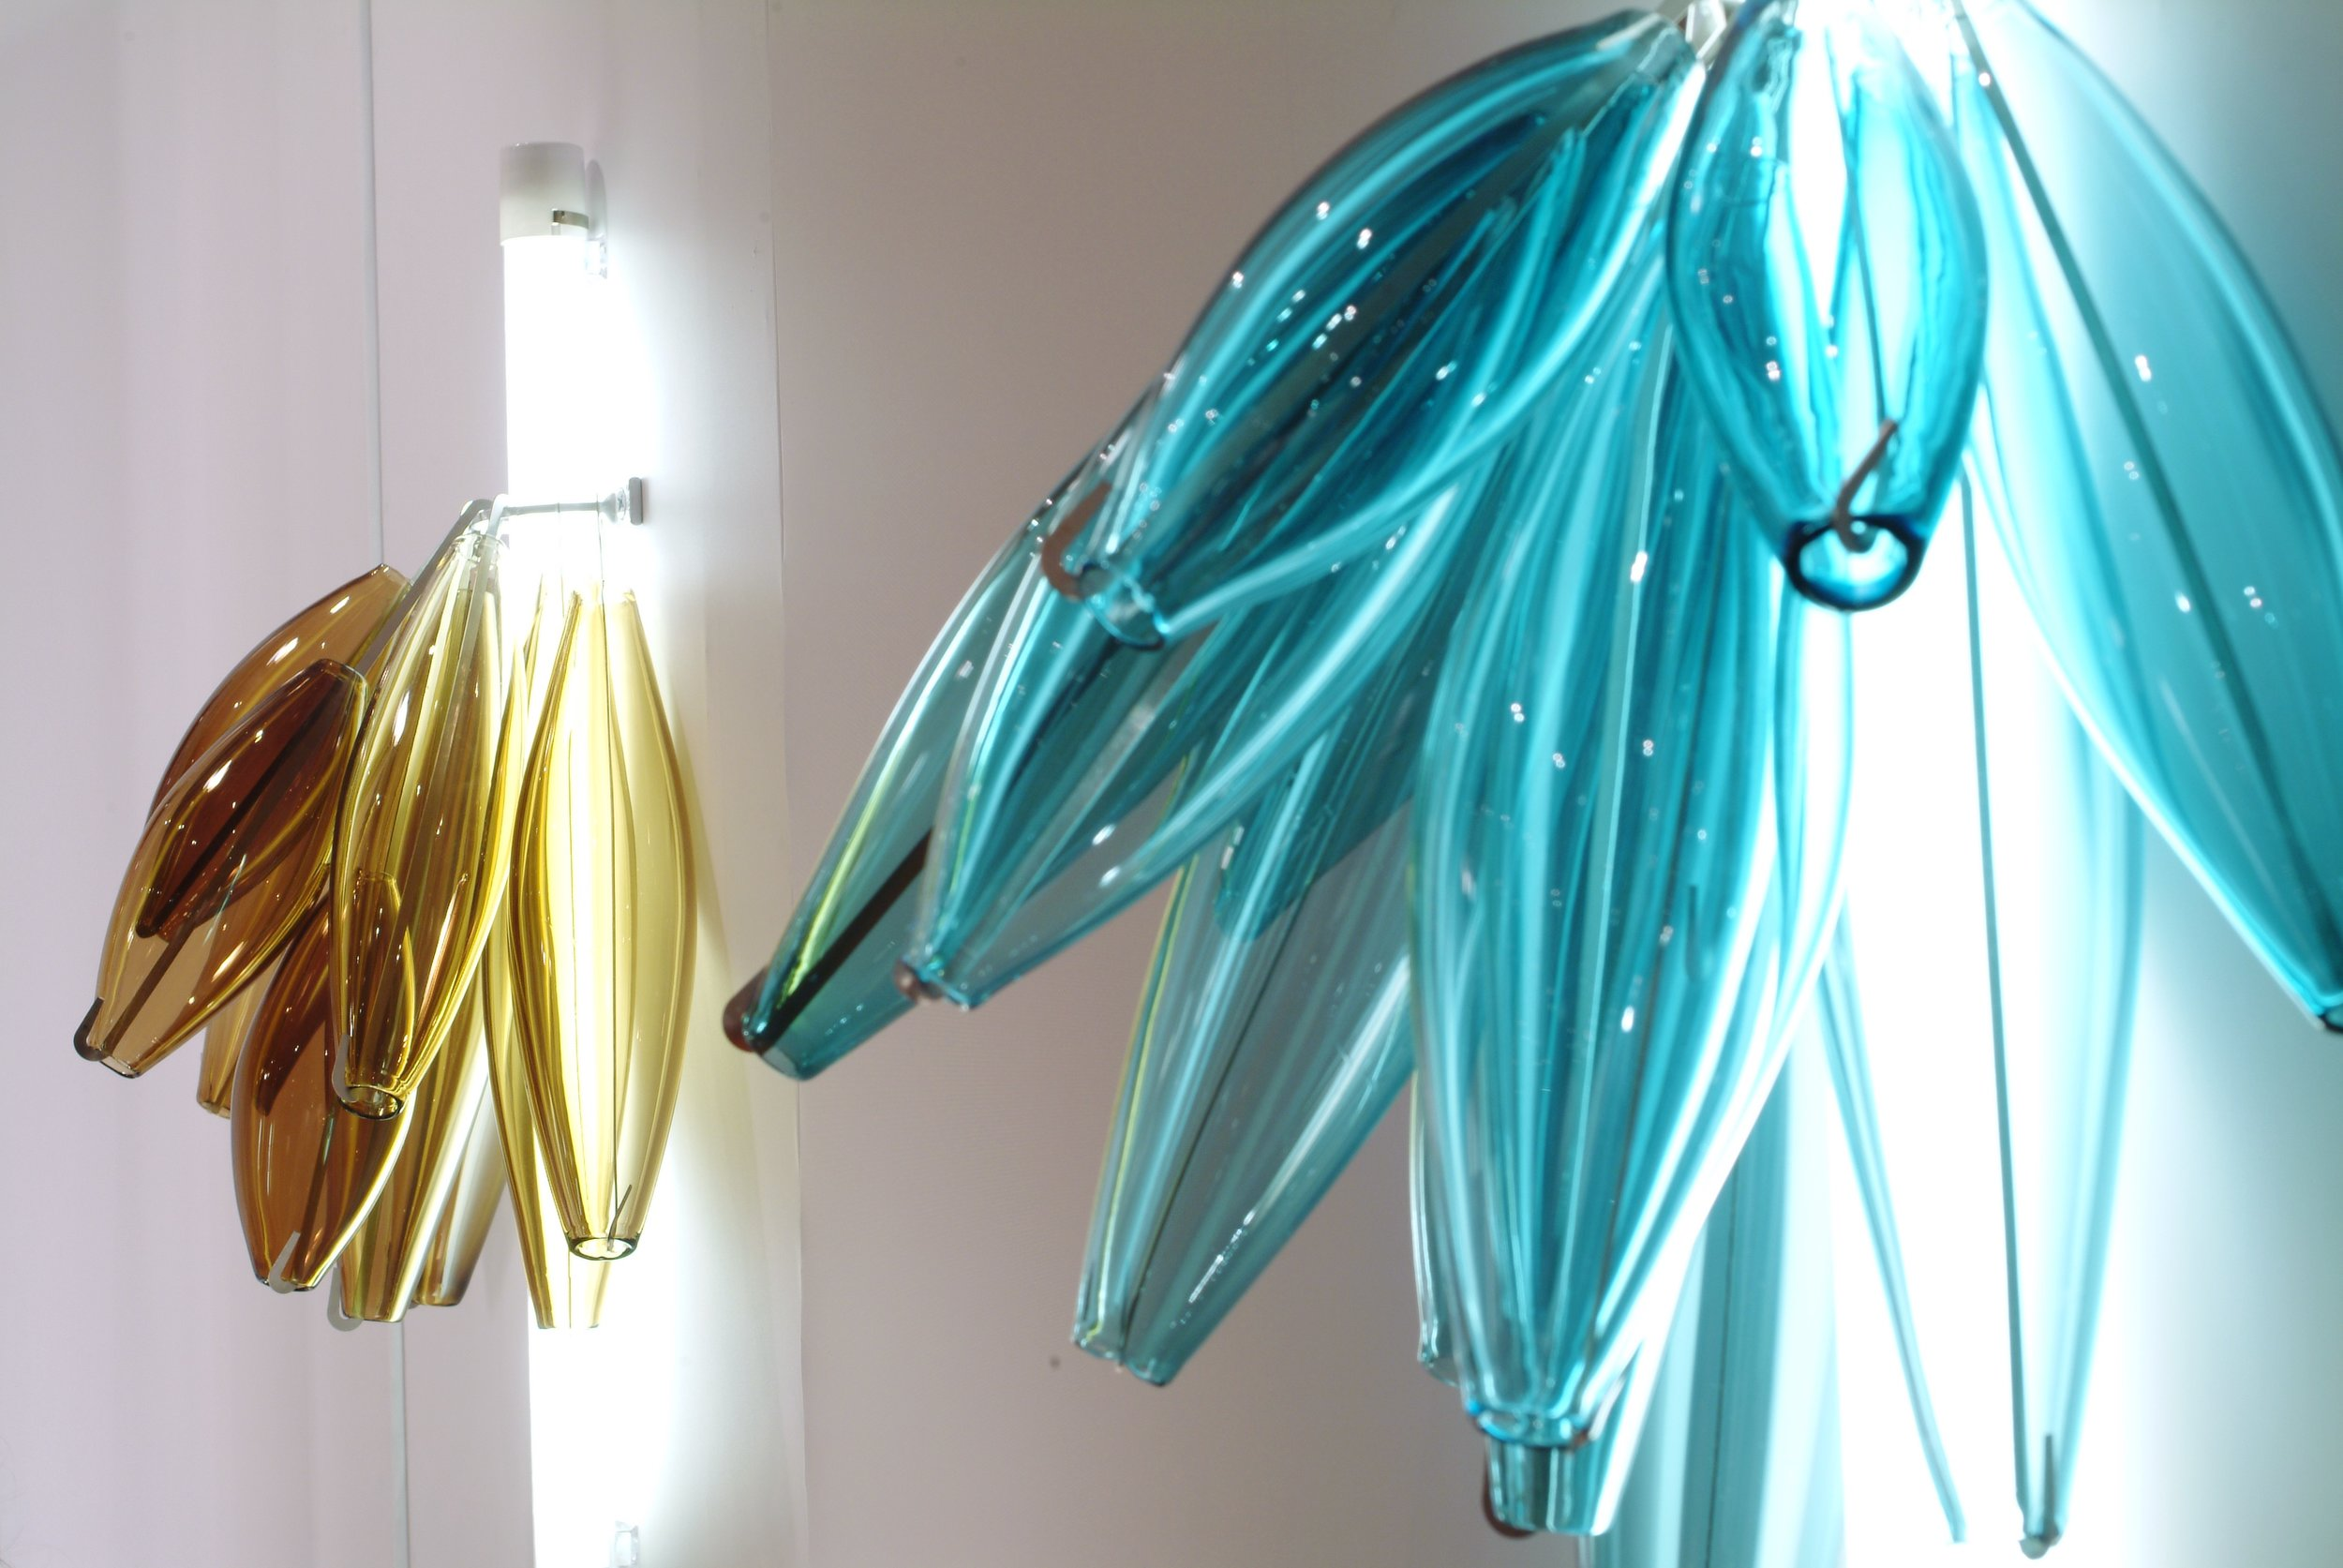 ▲'Squid' wall sconces for a private client in Miami